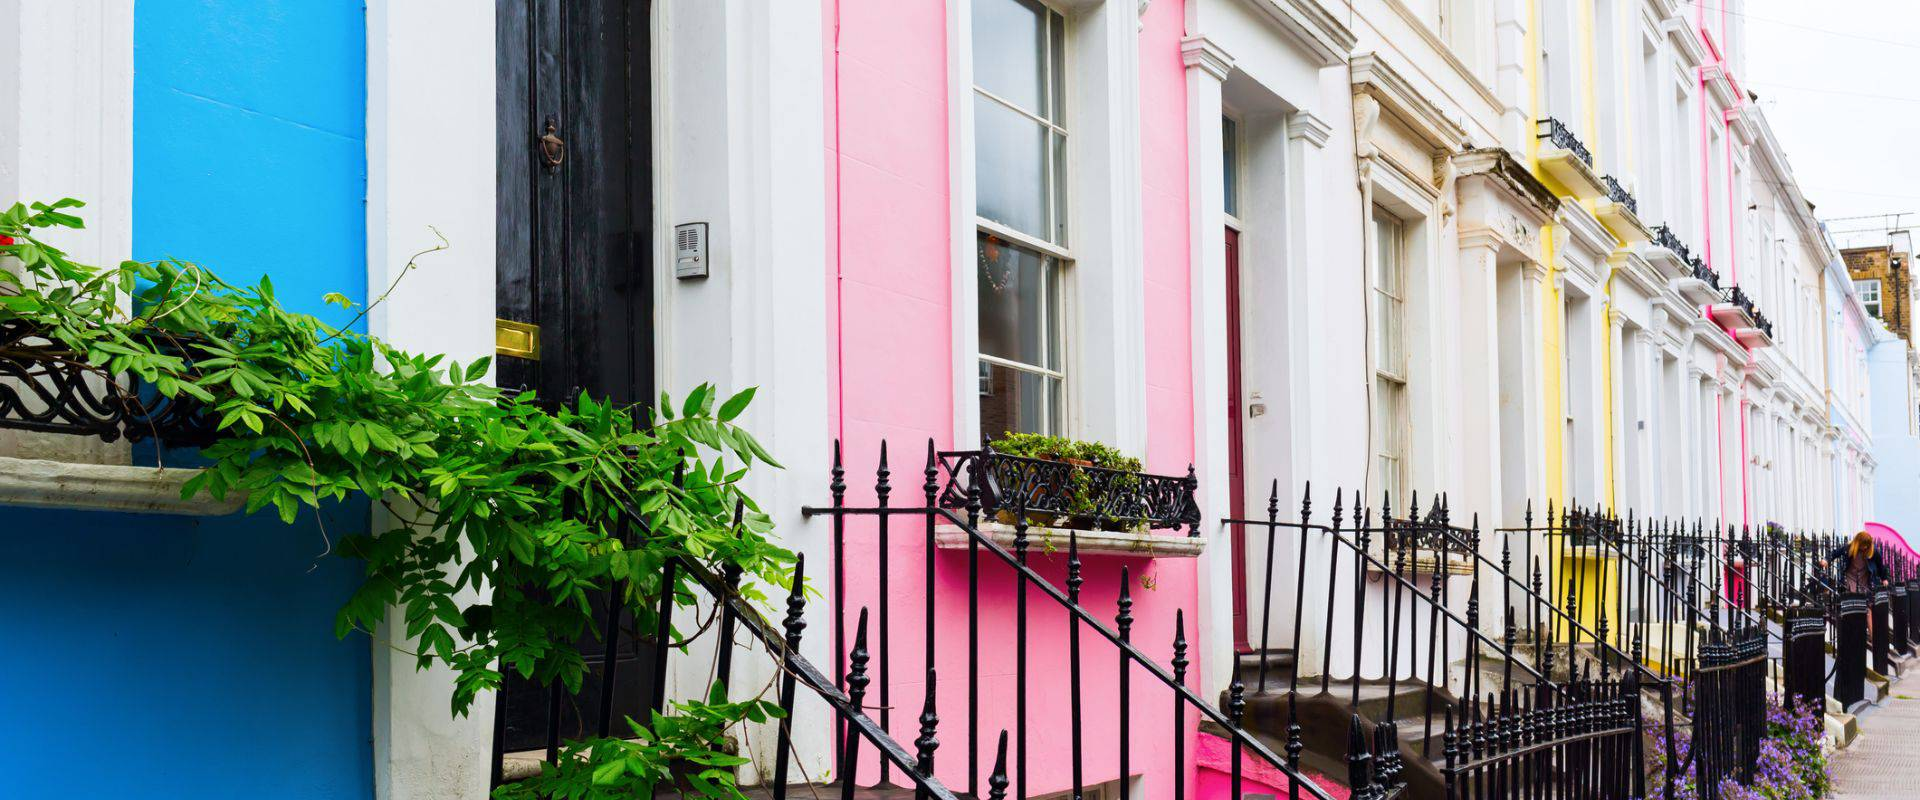 Services nox hotels | notting hill london